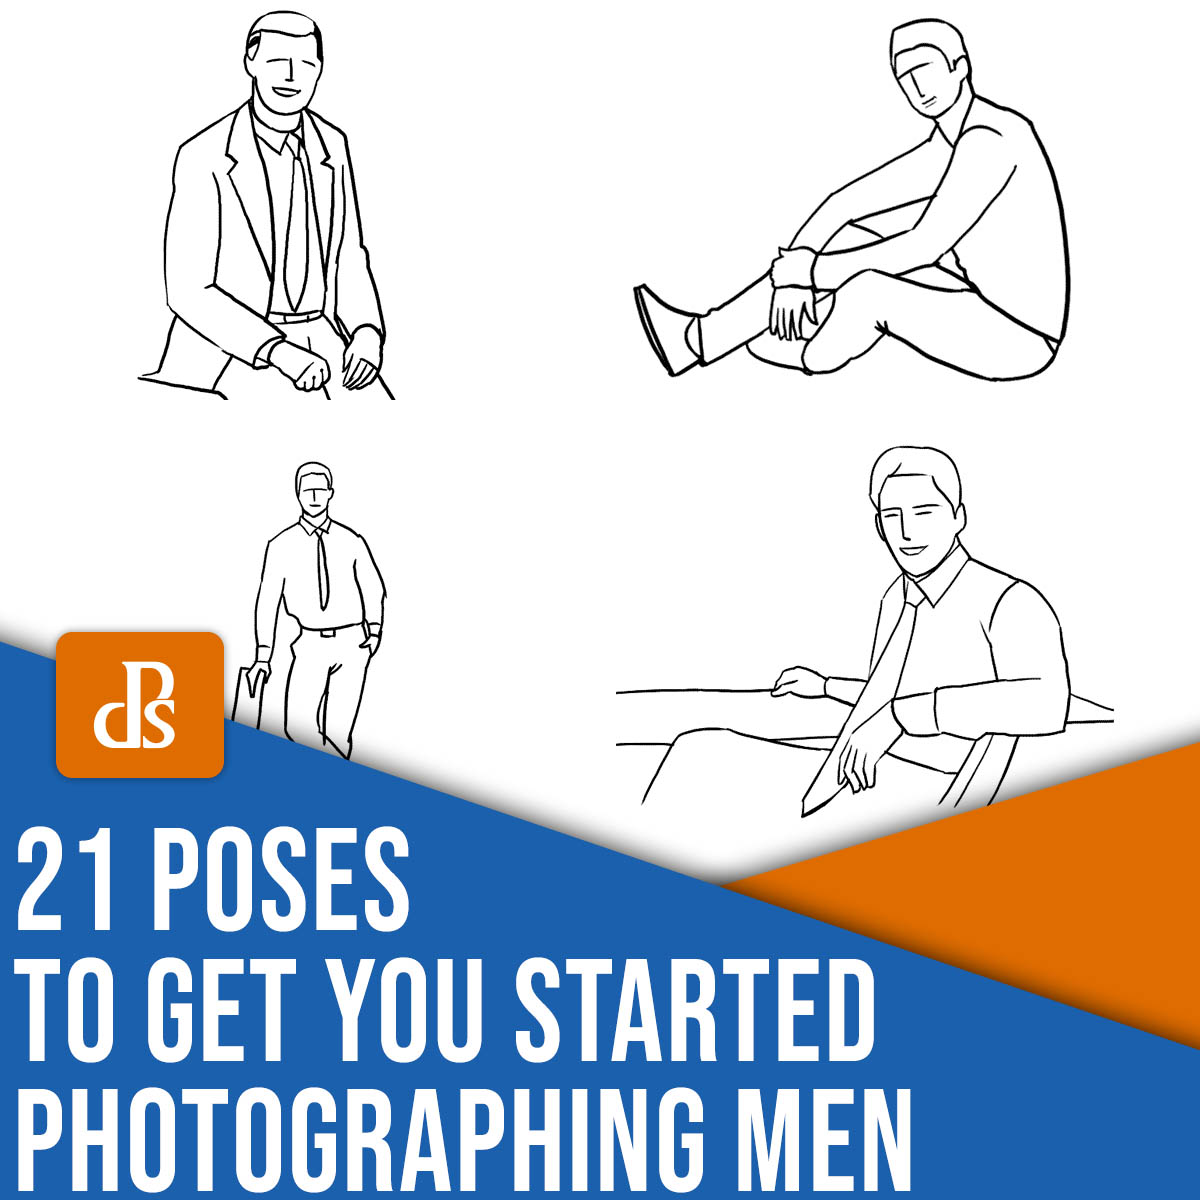 21 poses to get you started photographing men